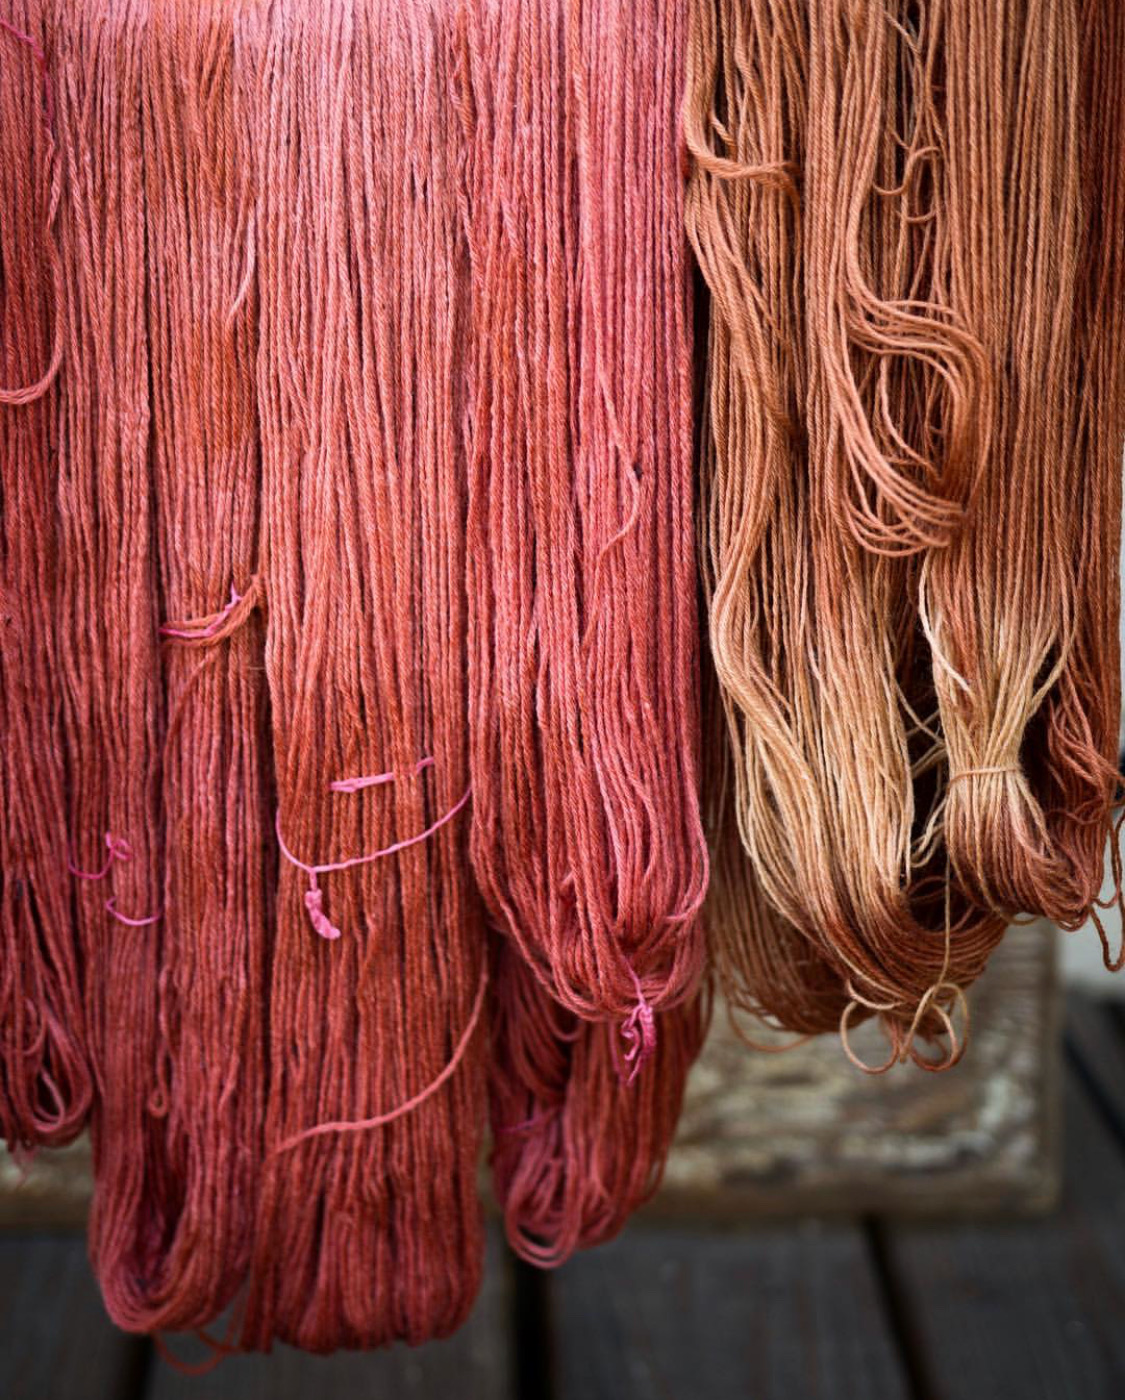 Left: Sustainable Merino, Right: Superwash Polwarth